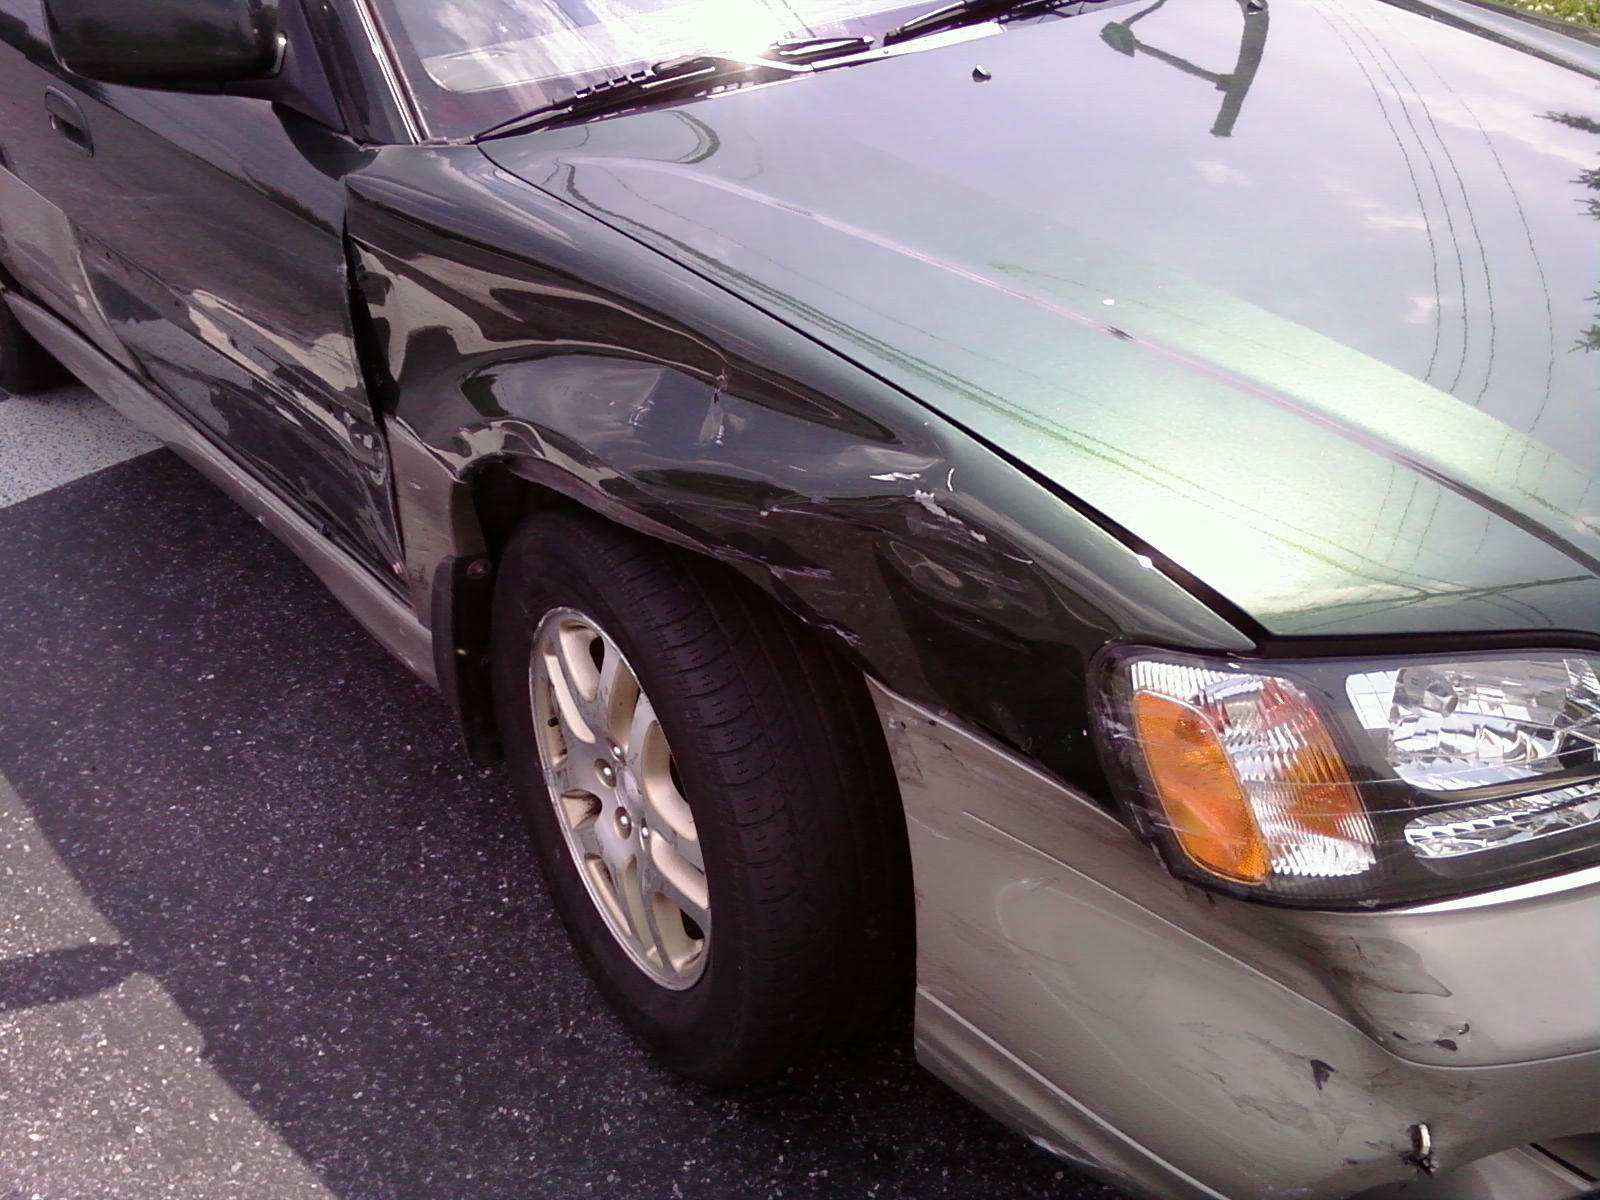 Damage To Other Car